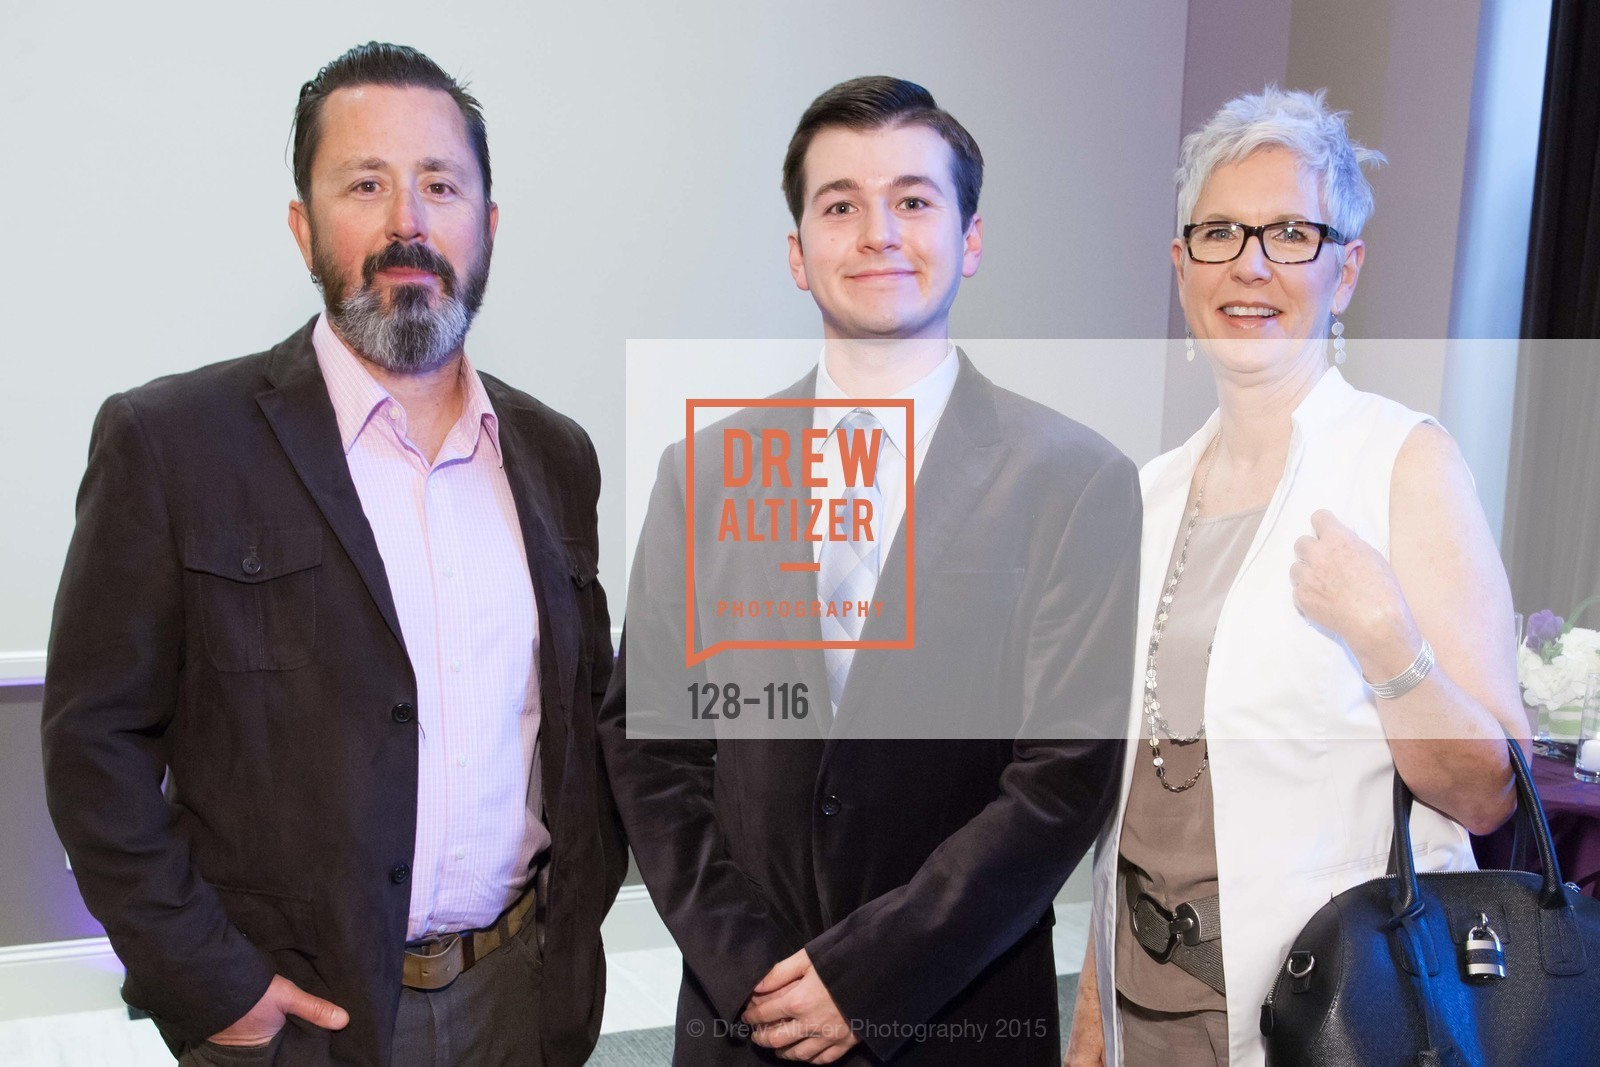 Michael Renfrow, Samuel Renfrow, Lori Richards, Aspire Public Schools 2nd Annual Gala, Bently Reserve, May 20th, 2015,Drew Altizer, Drew Altizer Photography, full-service agency, private events, San Francisco photographer, photographer california